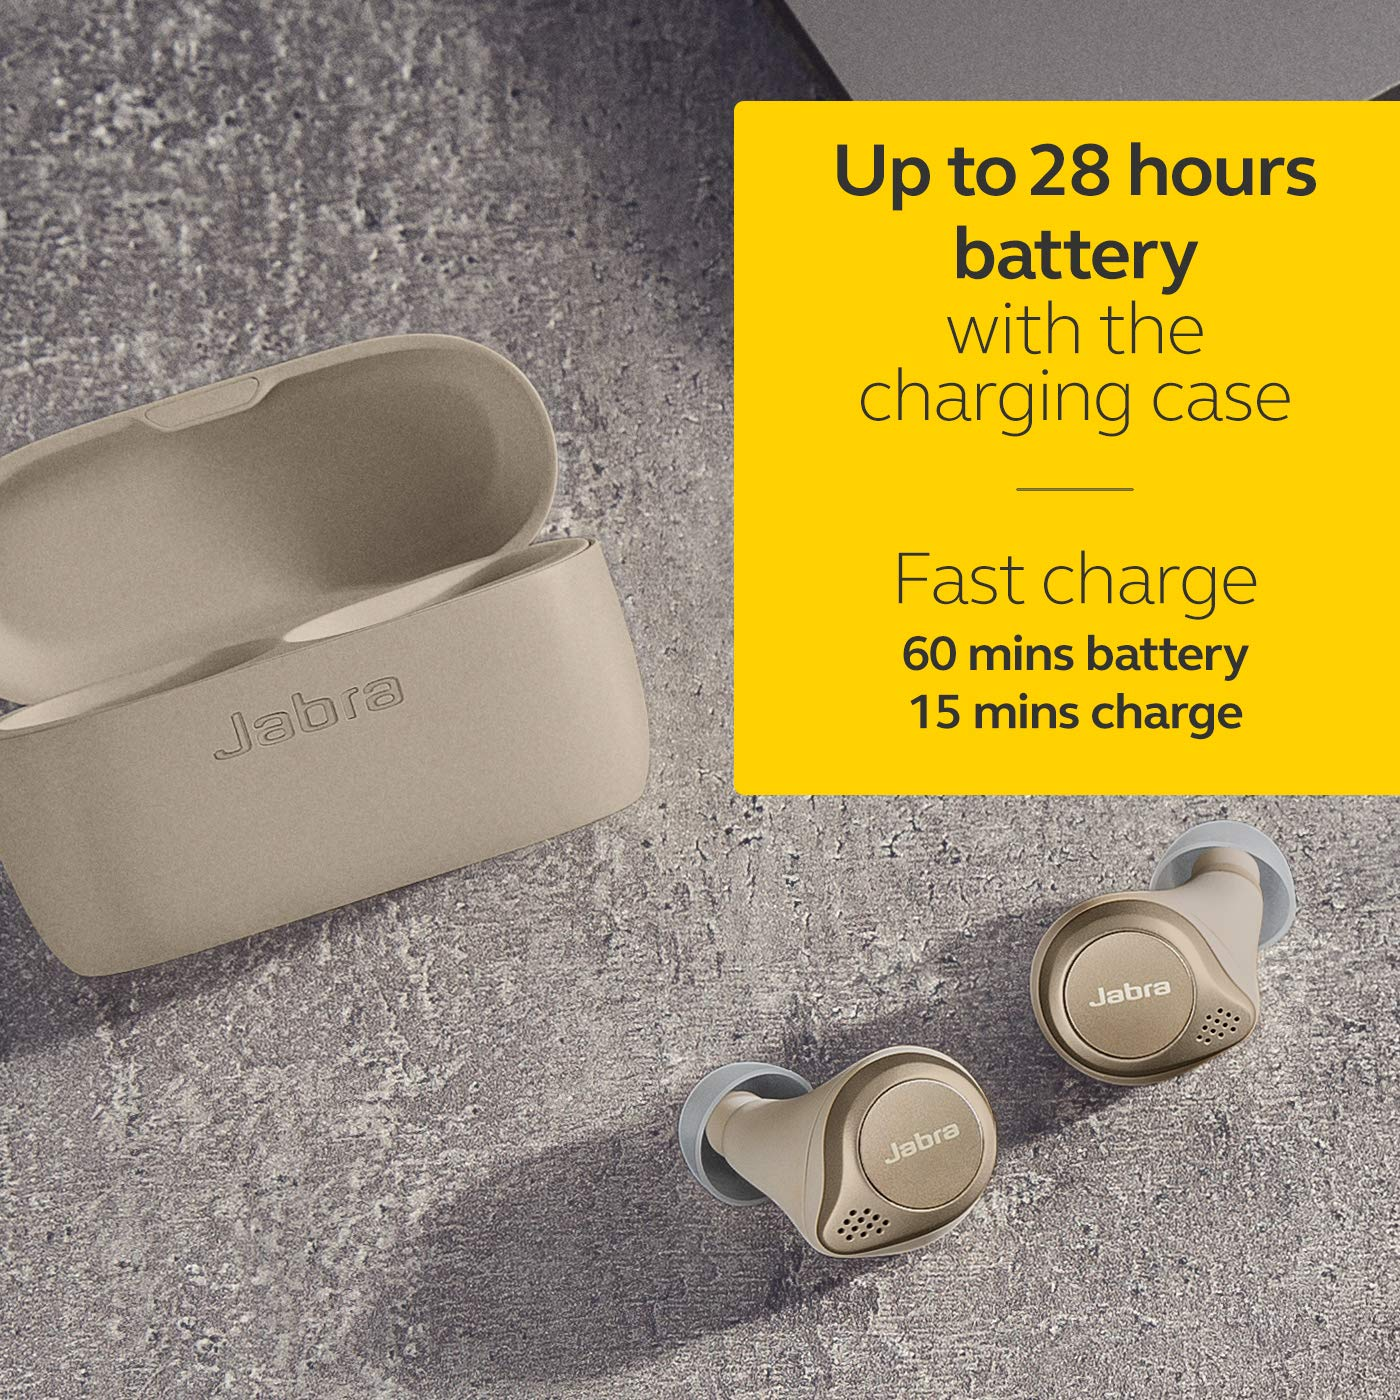 Jabra-Elite-75t-Voice-Assistant-Enabled-True-Wireless-earbuds-with-Charging-Case thumbnail 7